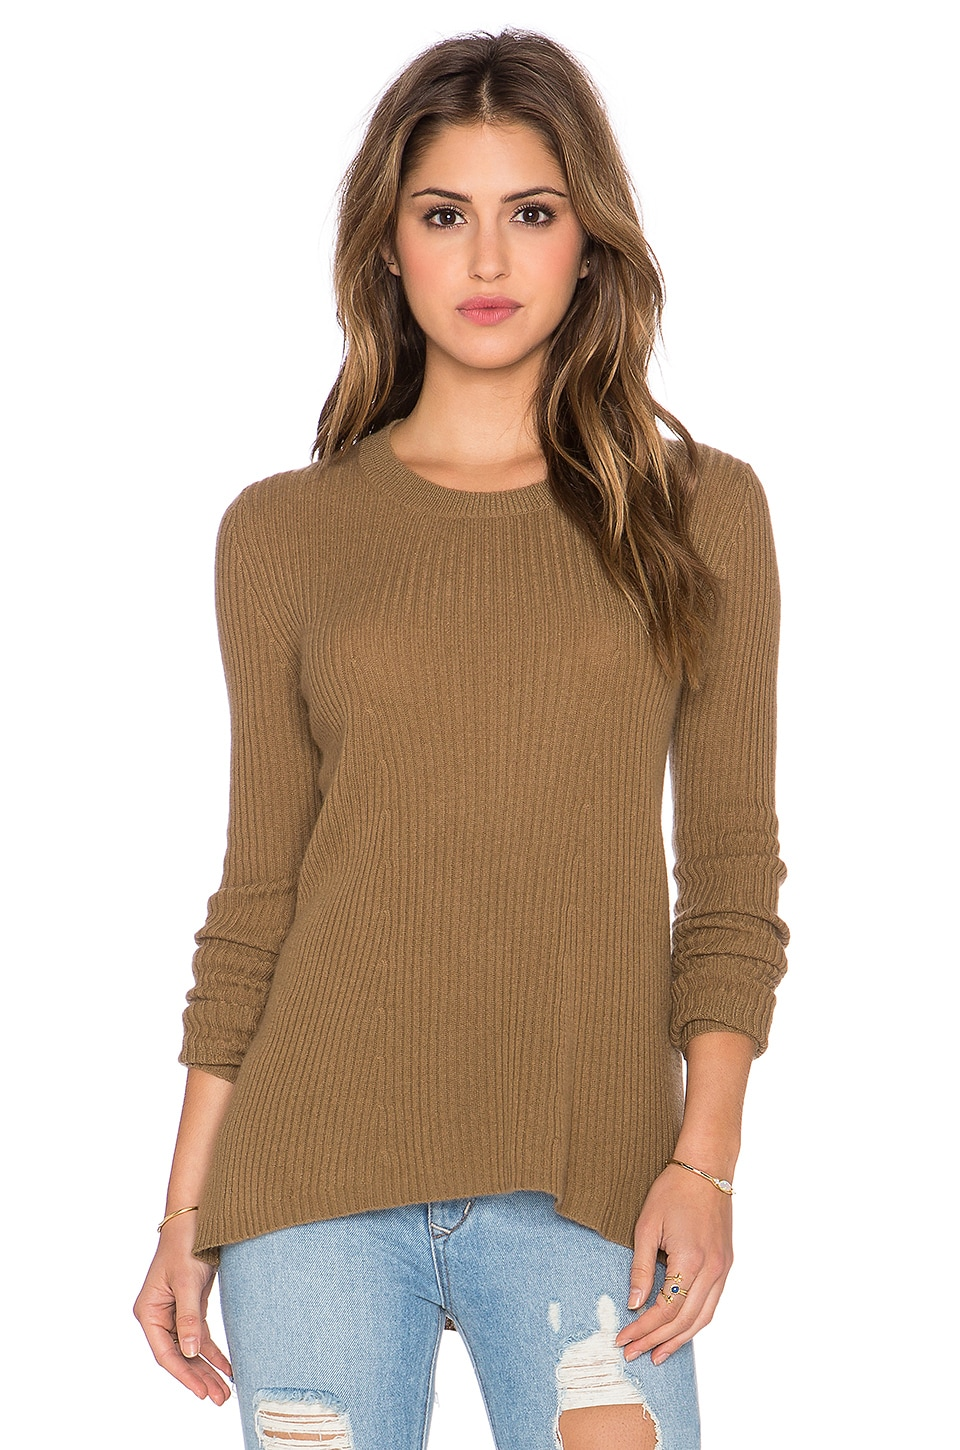 Enza Costa Cashmere Flare Sweater in Dark Camel